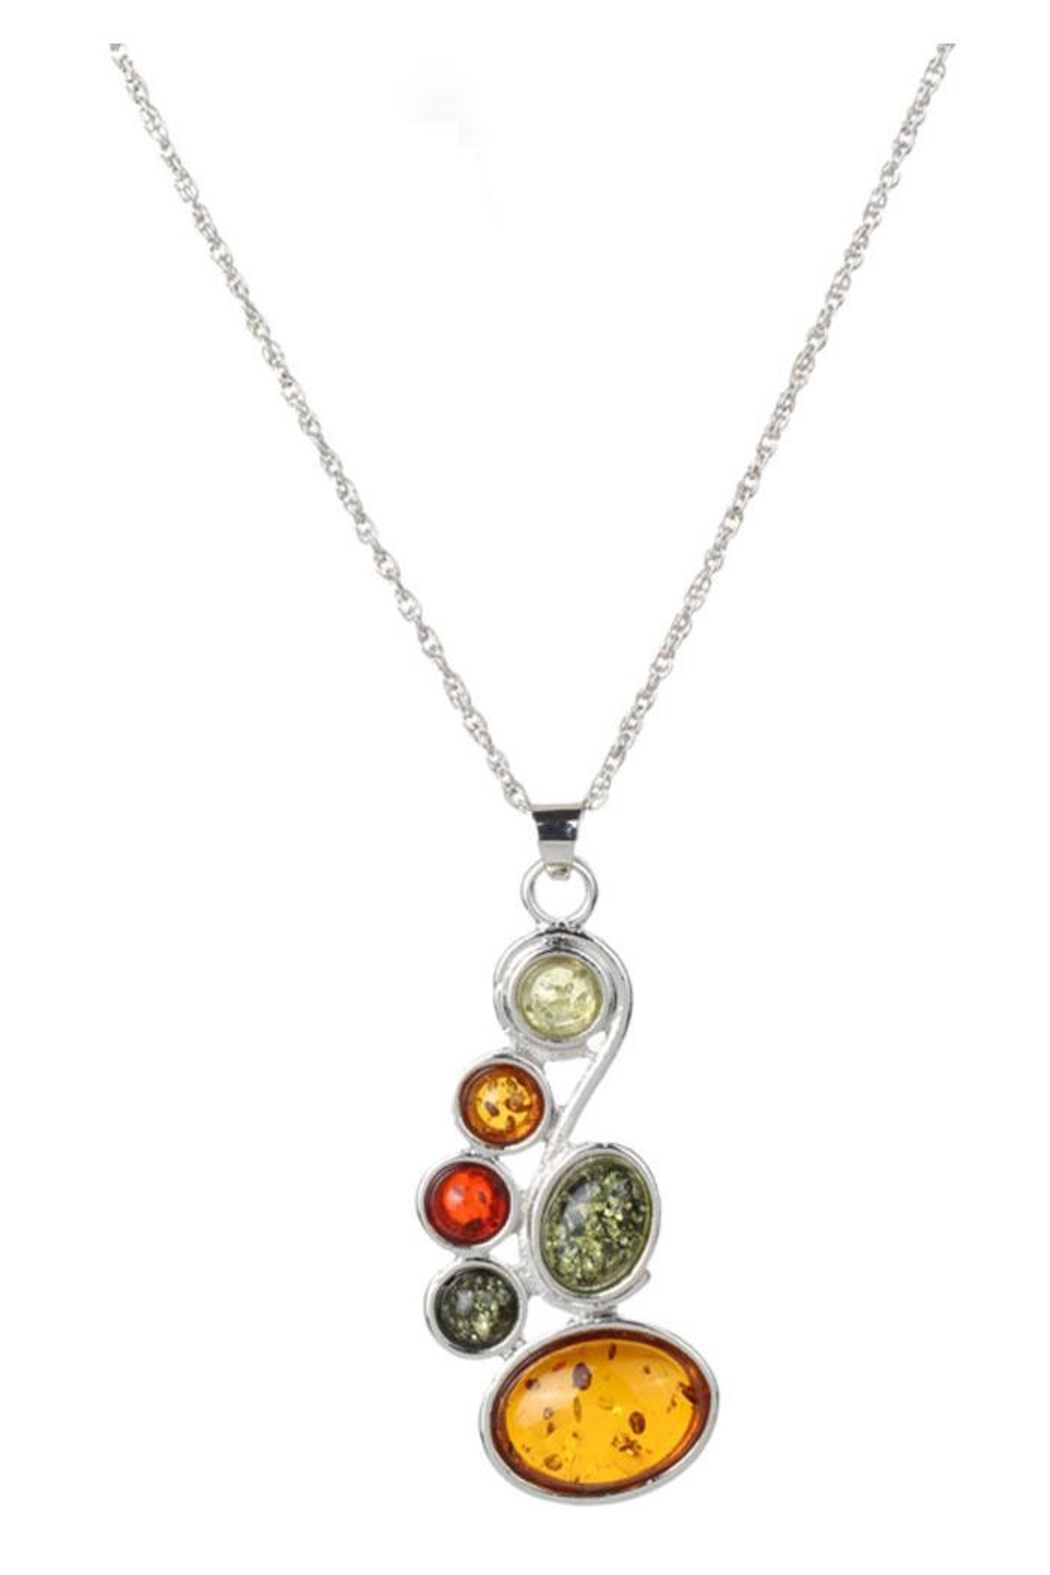 Anju Handcrafted Artisan Jewelry Multi-Color Crystal Necklace - Main Image